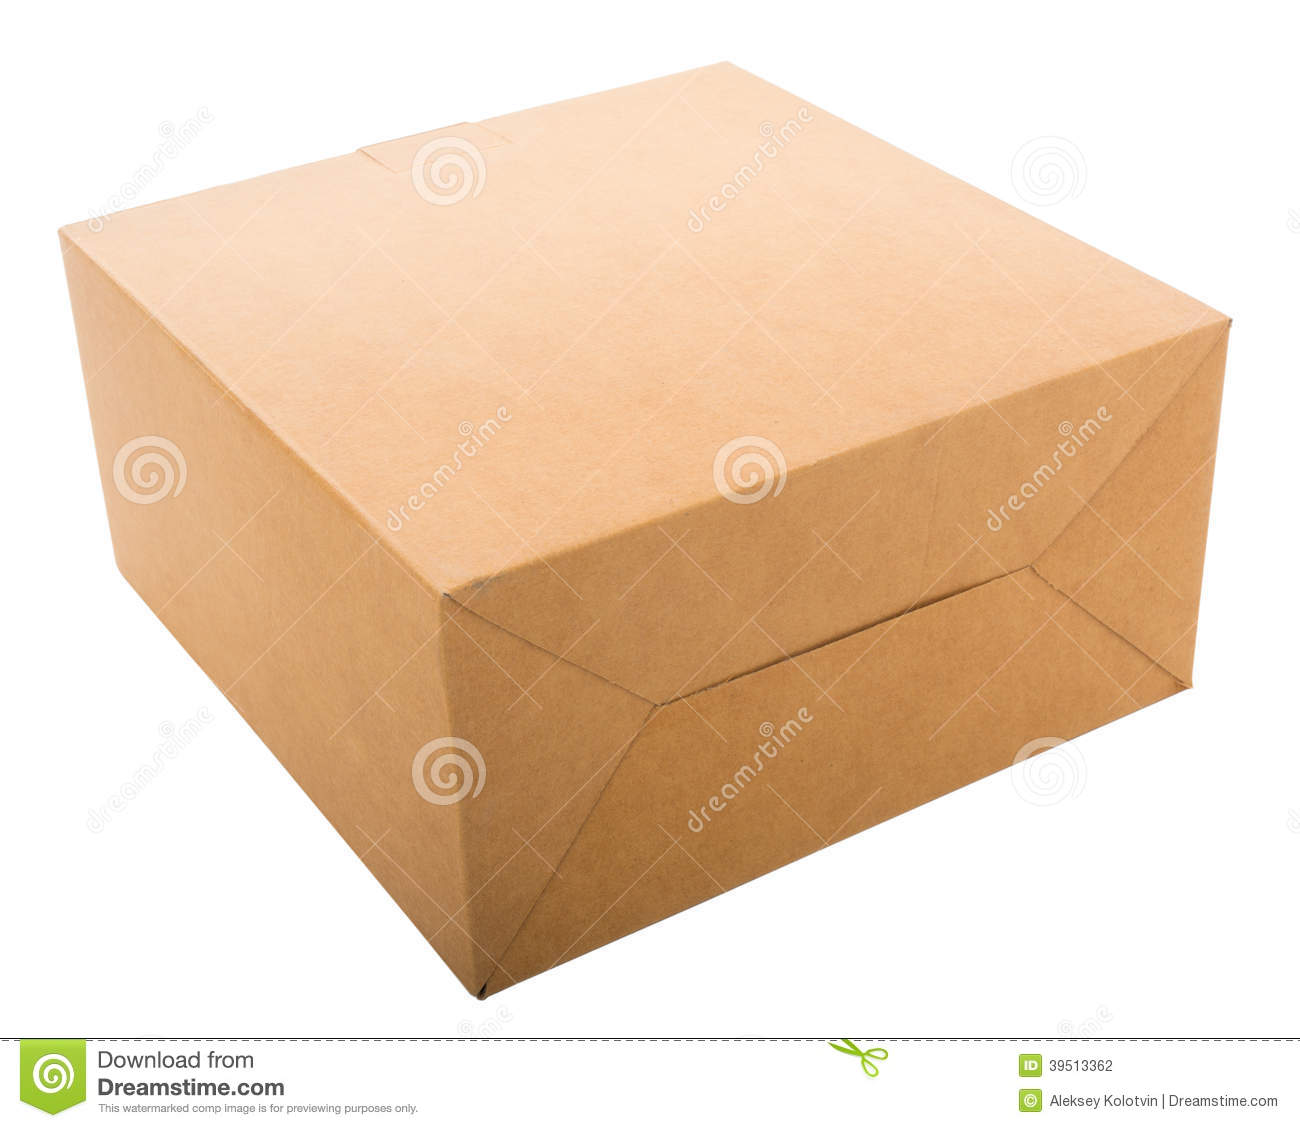 Closed cardboard box isolated on white.